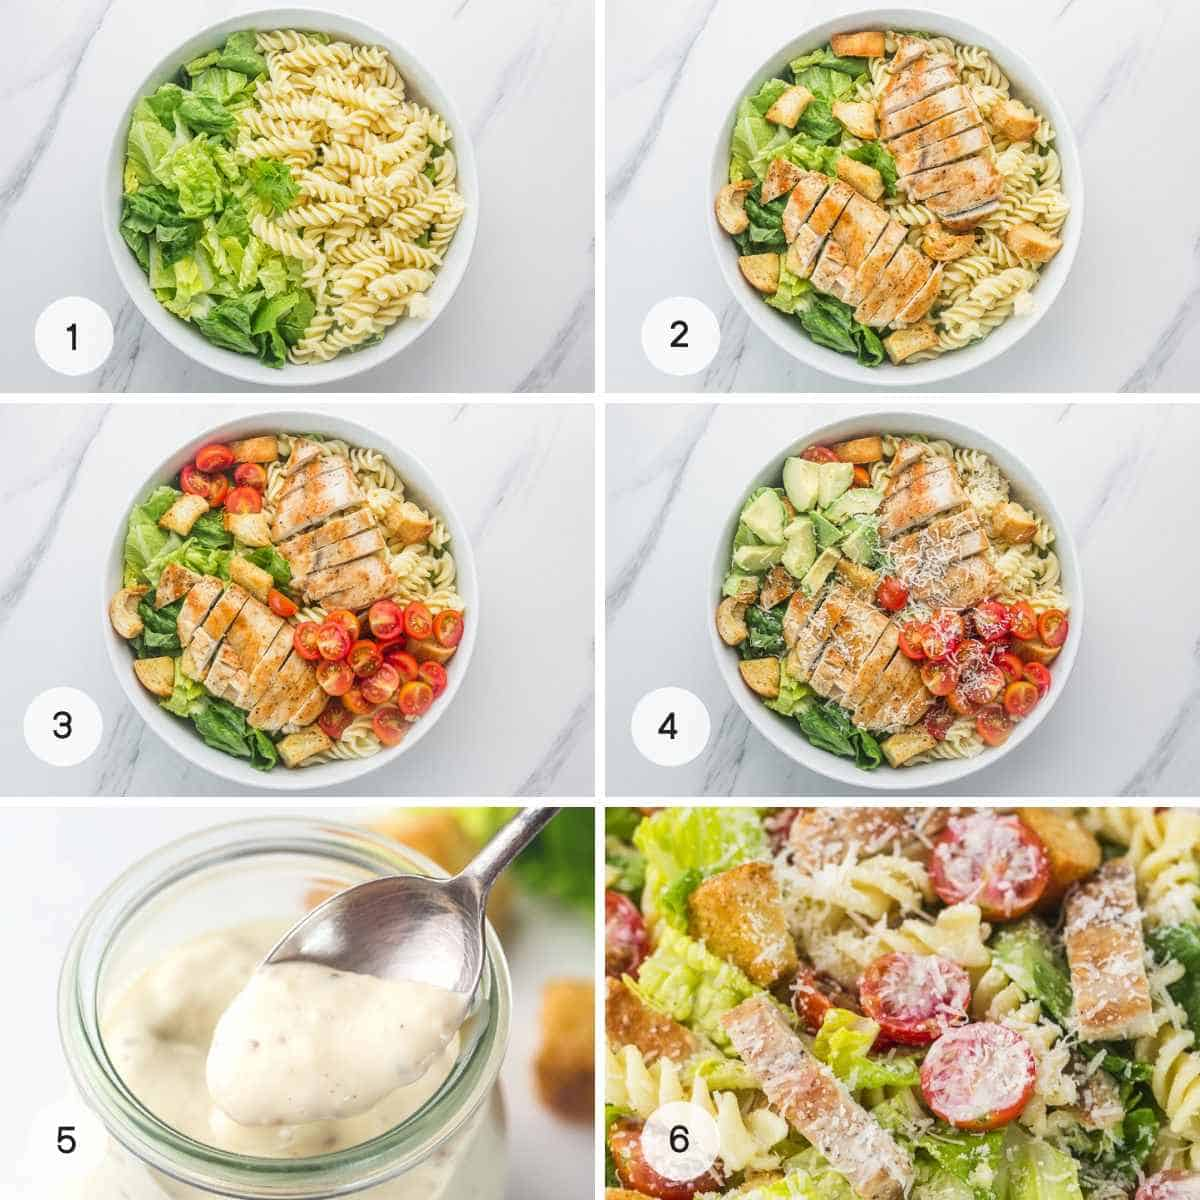 Steps how to make the pasta salad